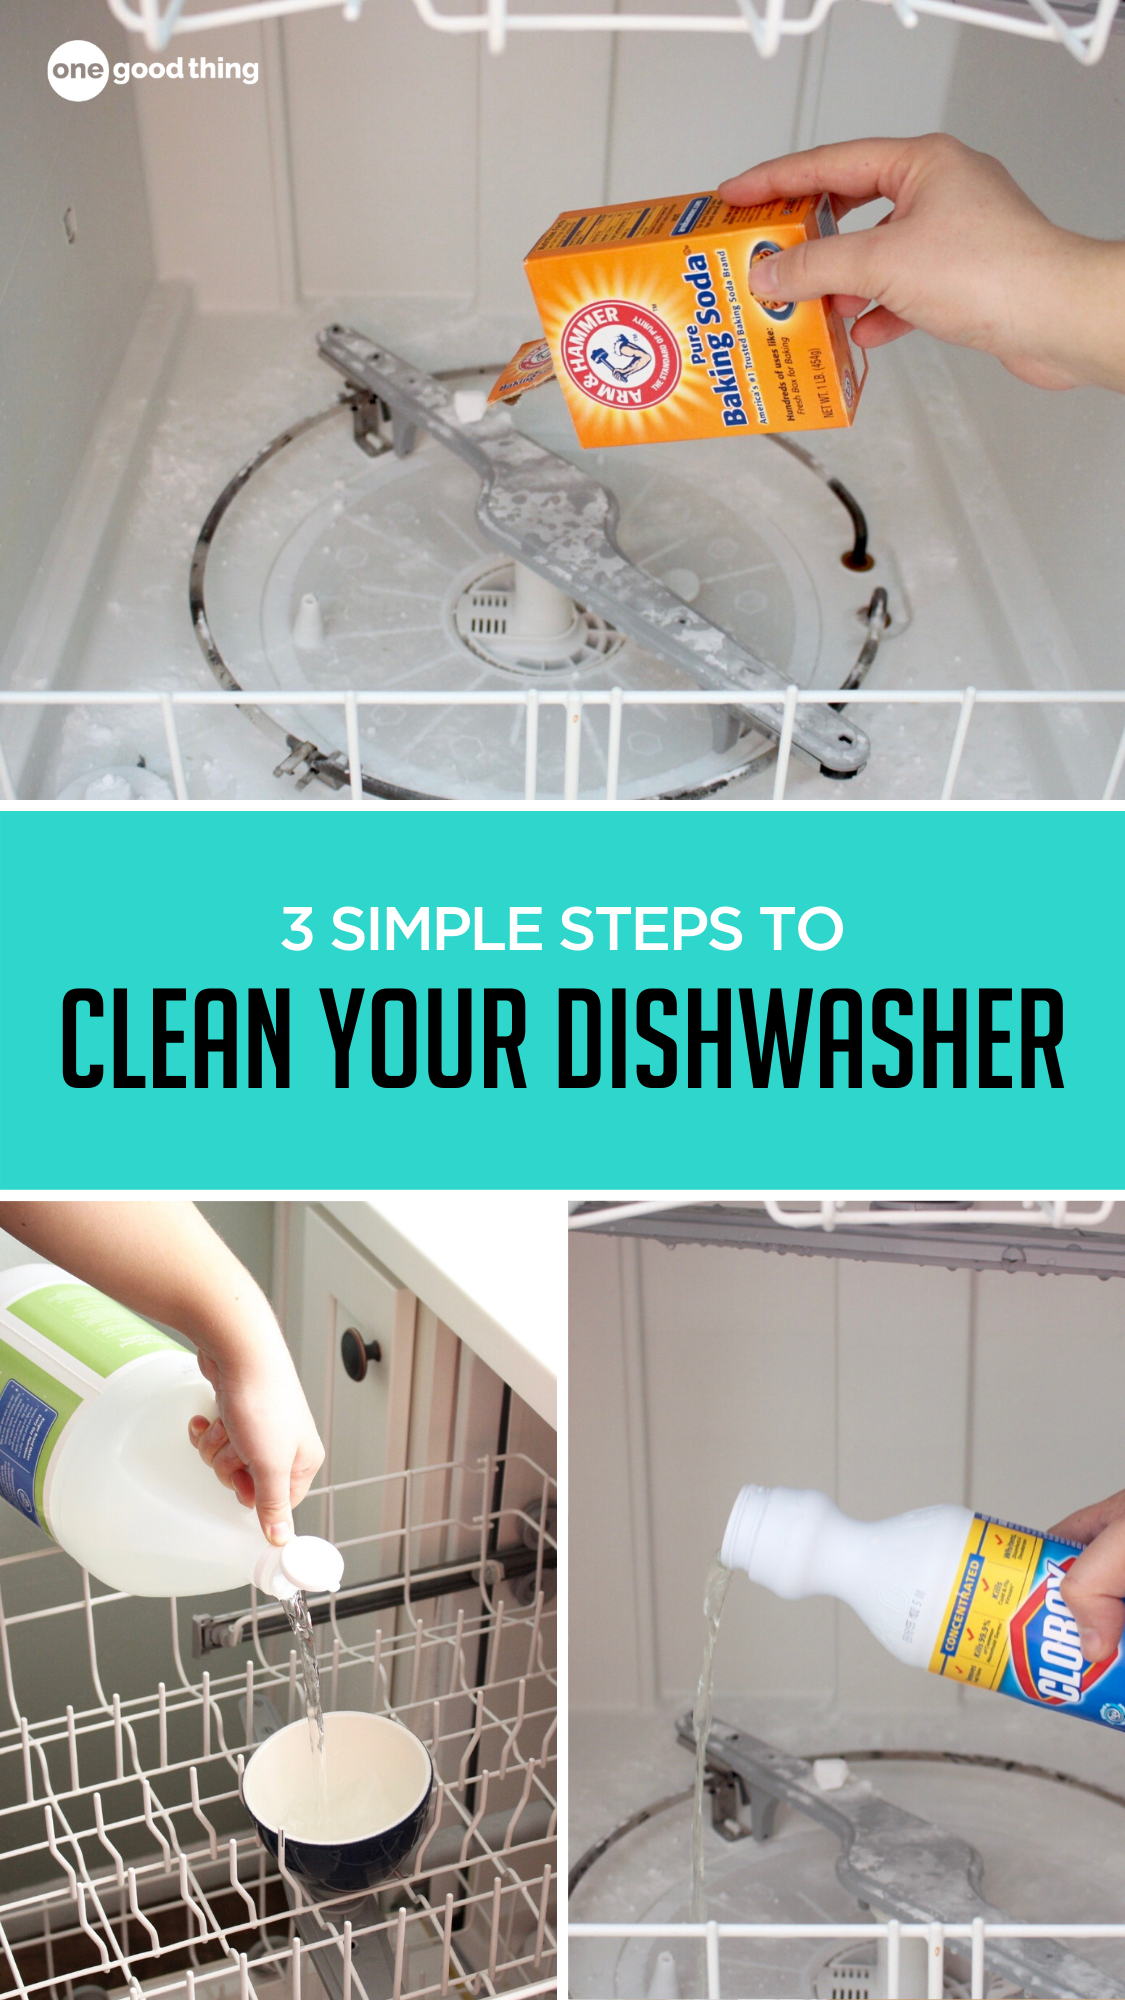 3 Simple Steps to Clean your Dishwasher